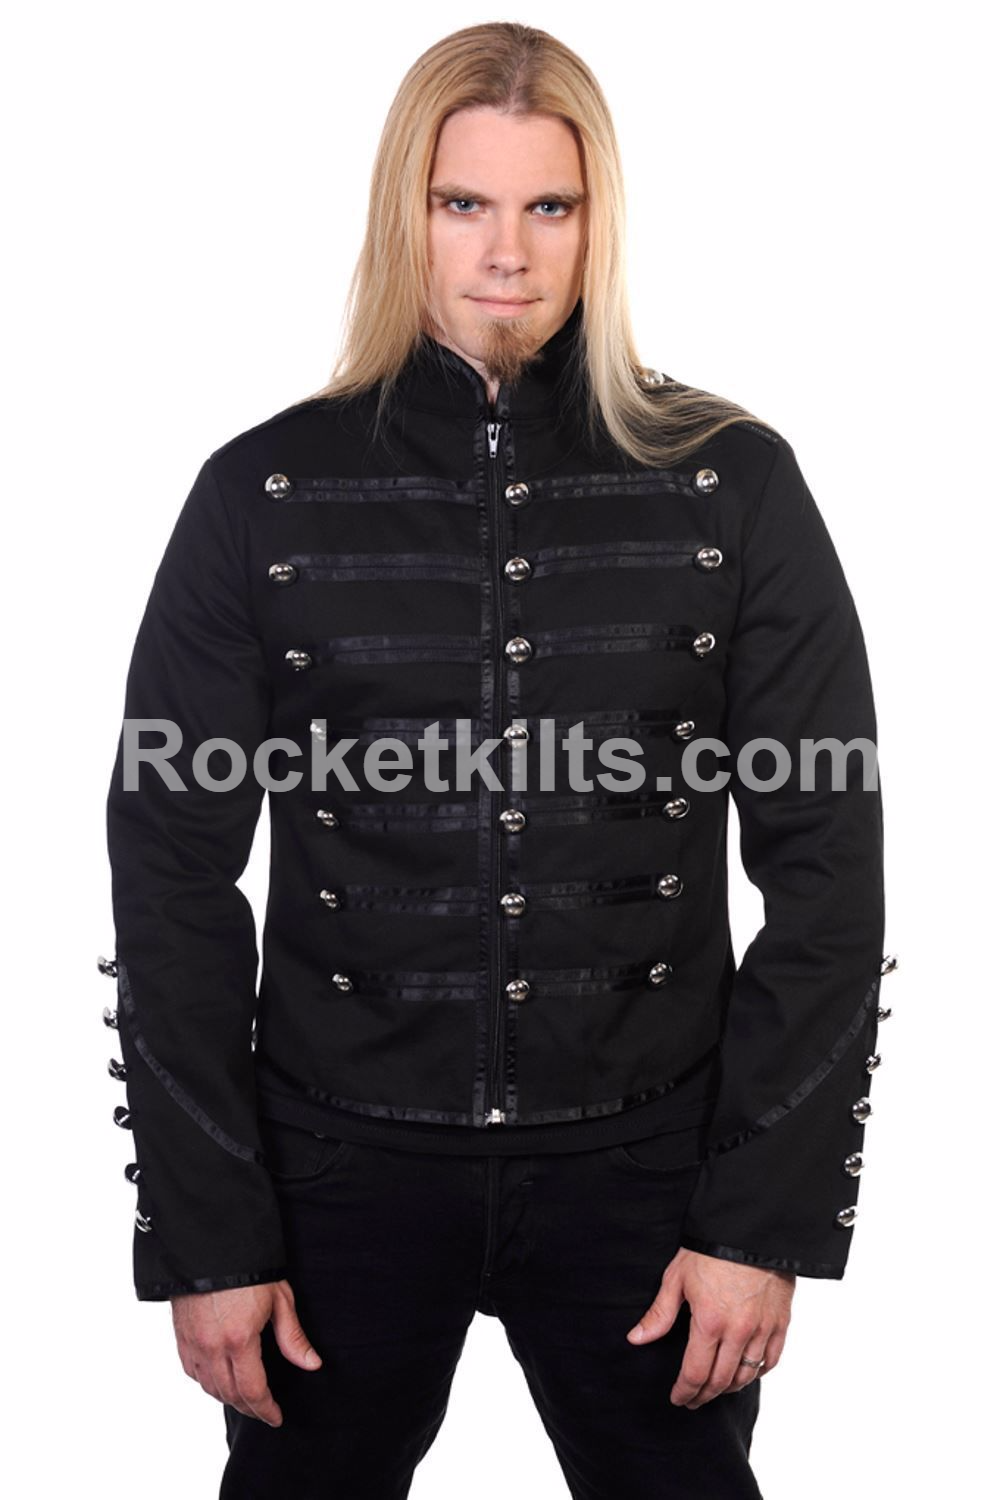 Black Banned Drummer Parade Military Jacket Men Goth Adam Ant Style